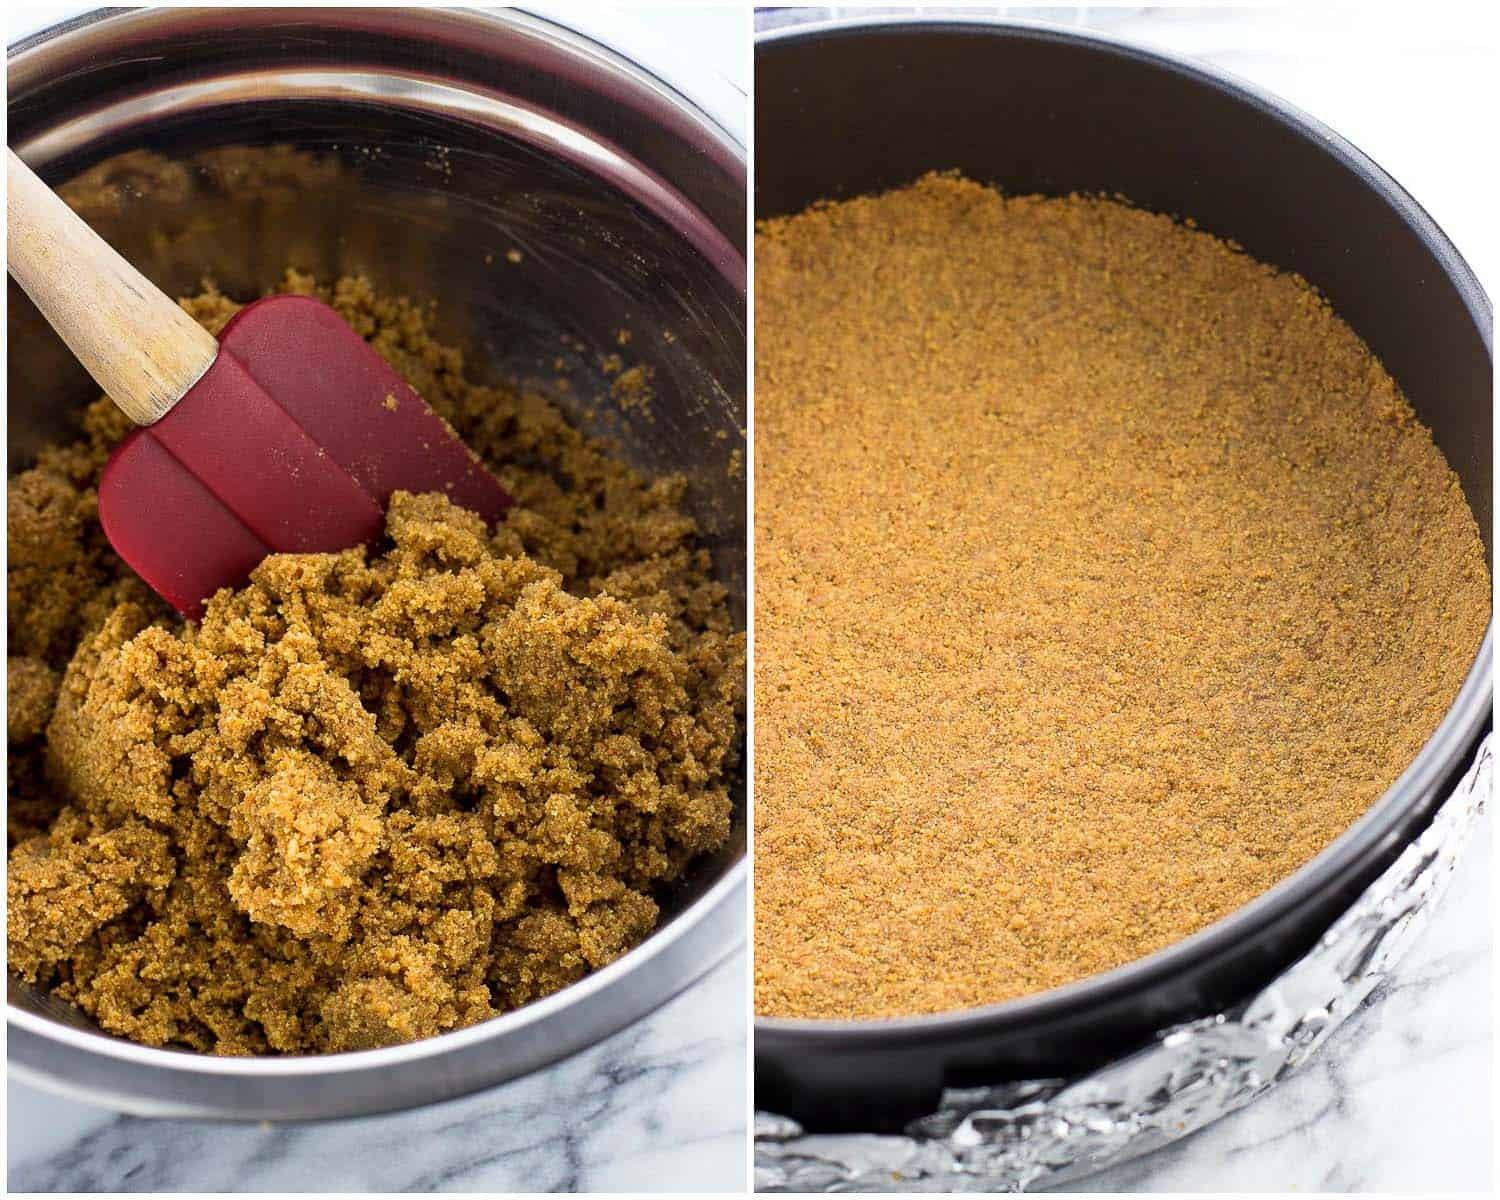 A side-by-side photo of cheesecake crust ingredients mixed together (left) and the crust ingredients pressed into the springform pan (right)